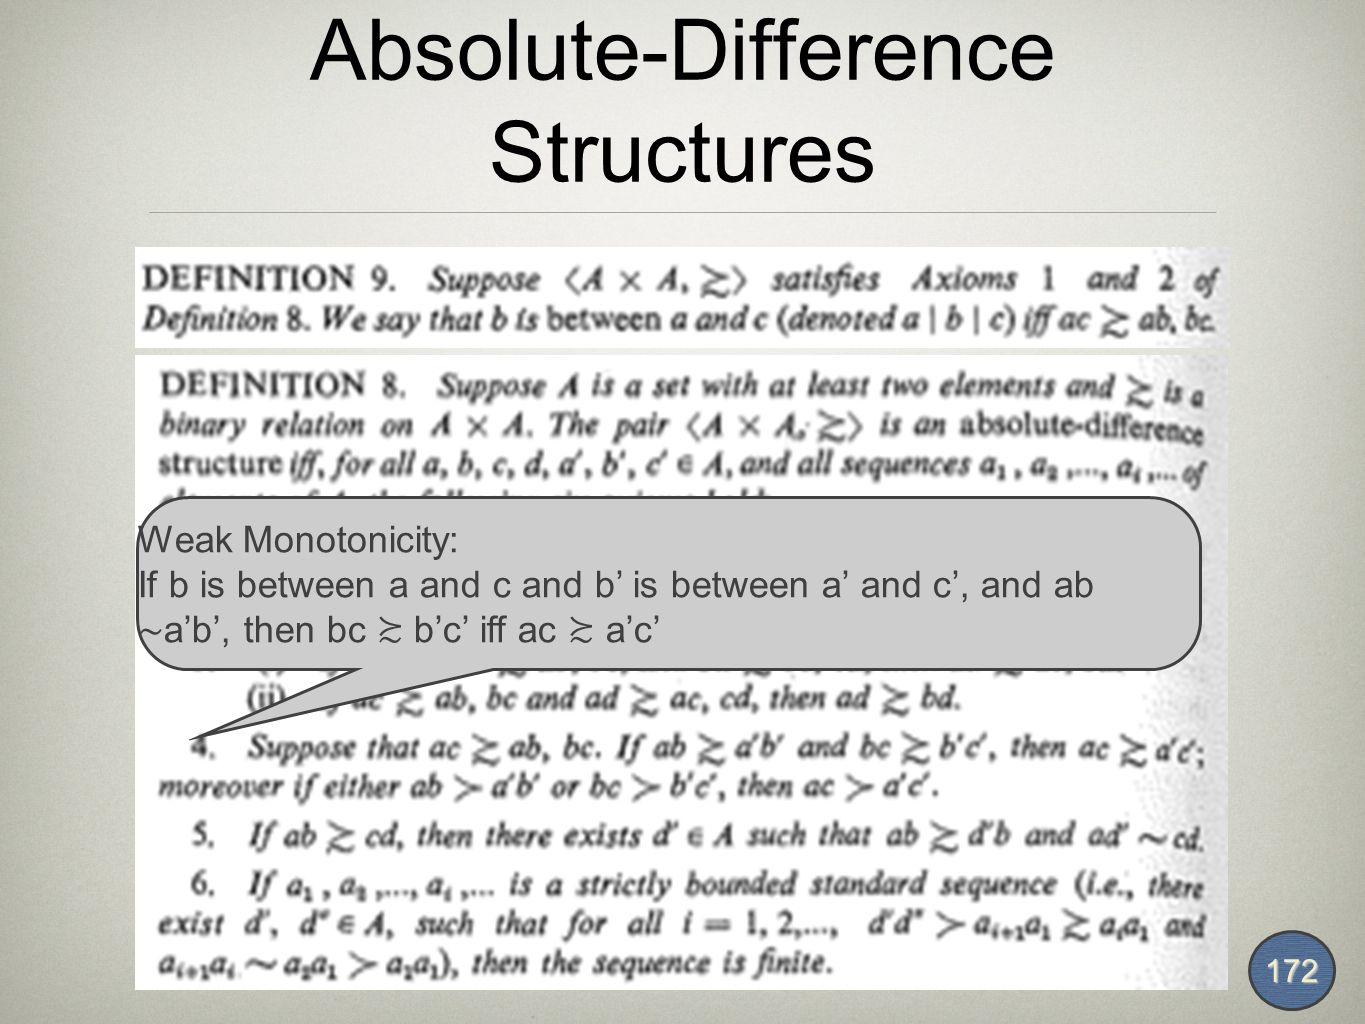 Absolute-Difference Structures 172 Weak Monotonicity: If b is between a and c and b' is between a' and c', and ab ∼ a'b', then bc ≿ b'c' iff ac ≿ a'c'